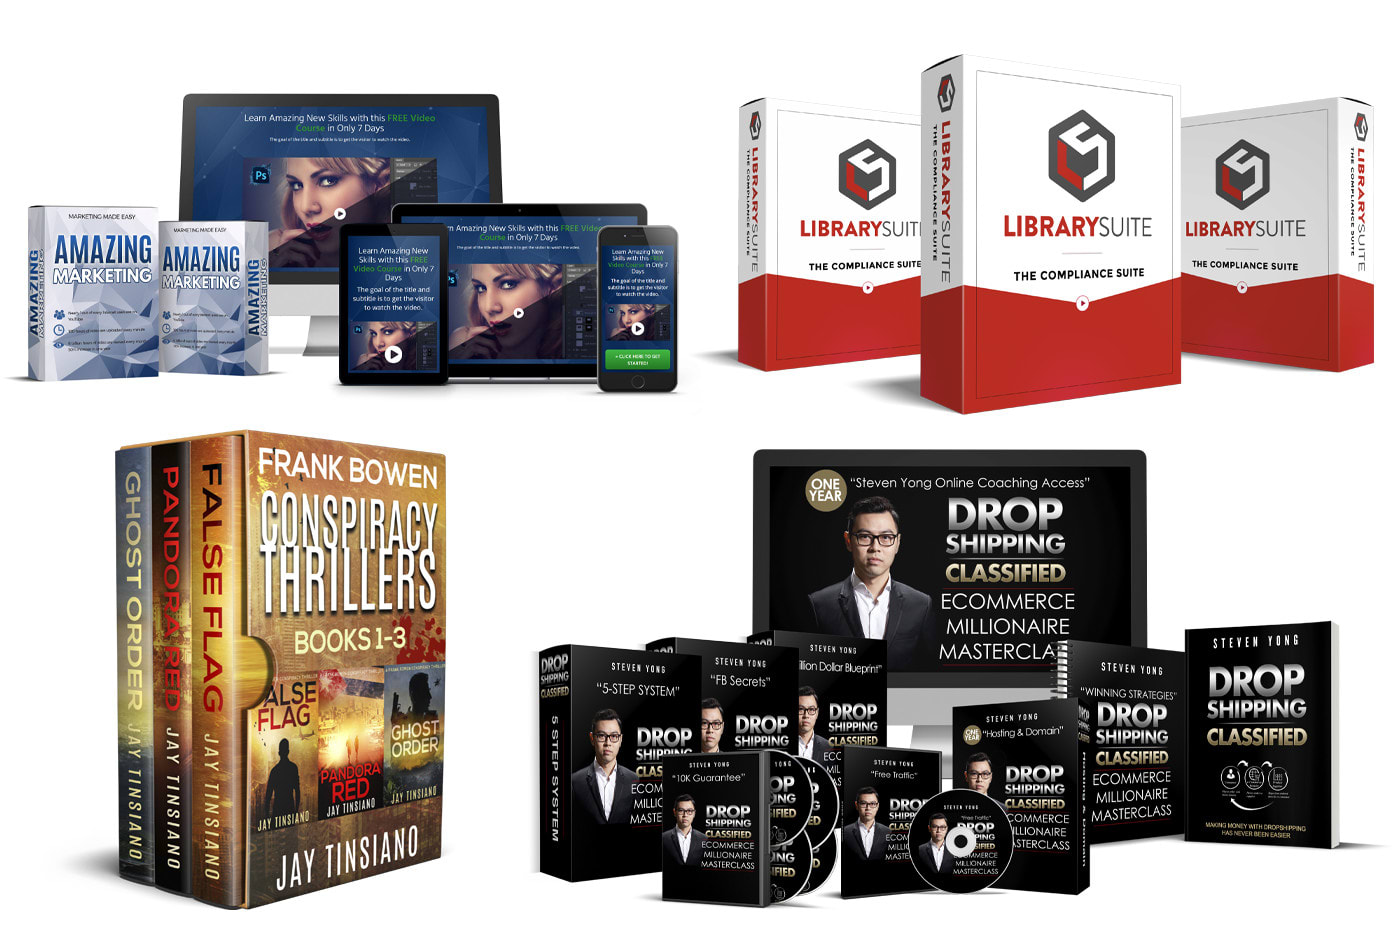 Design Software Box Book Cover Box Set Ebook Dvd Cd Online Course Bundle By Goliwog